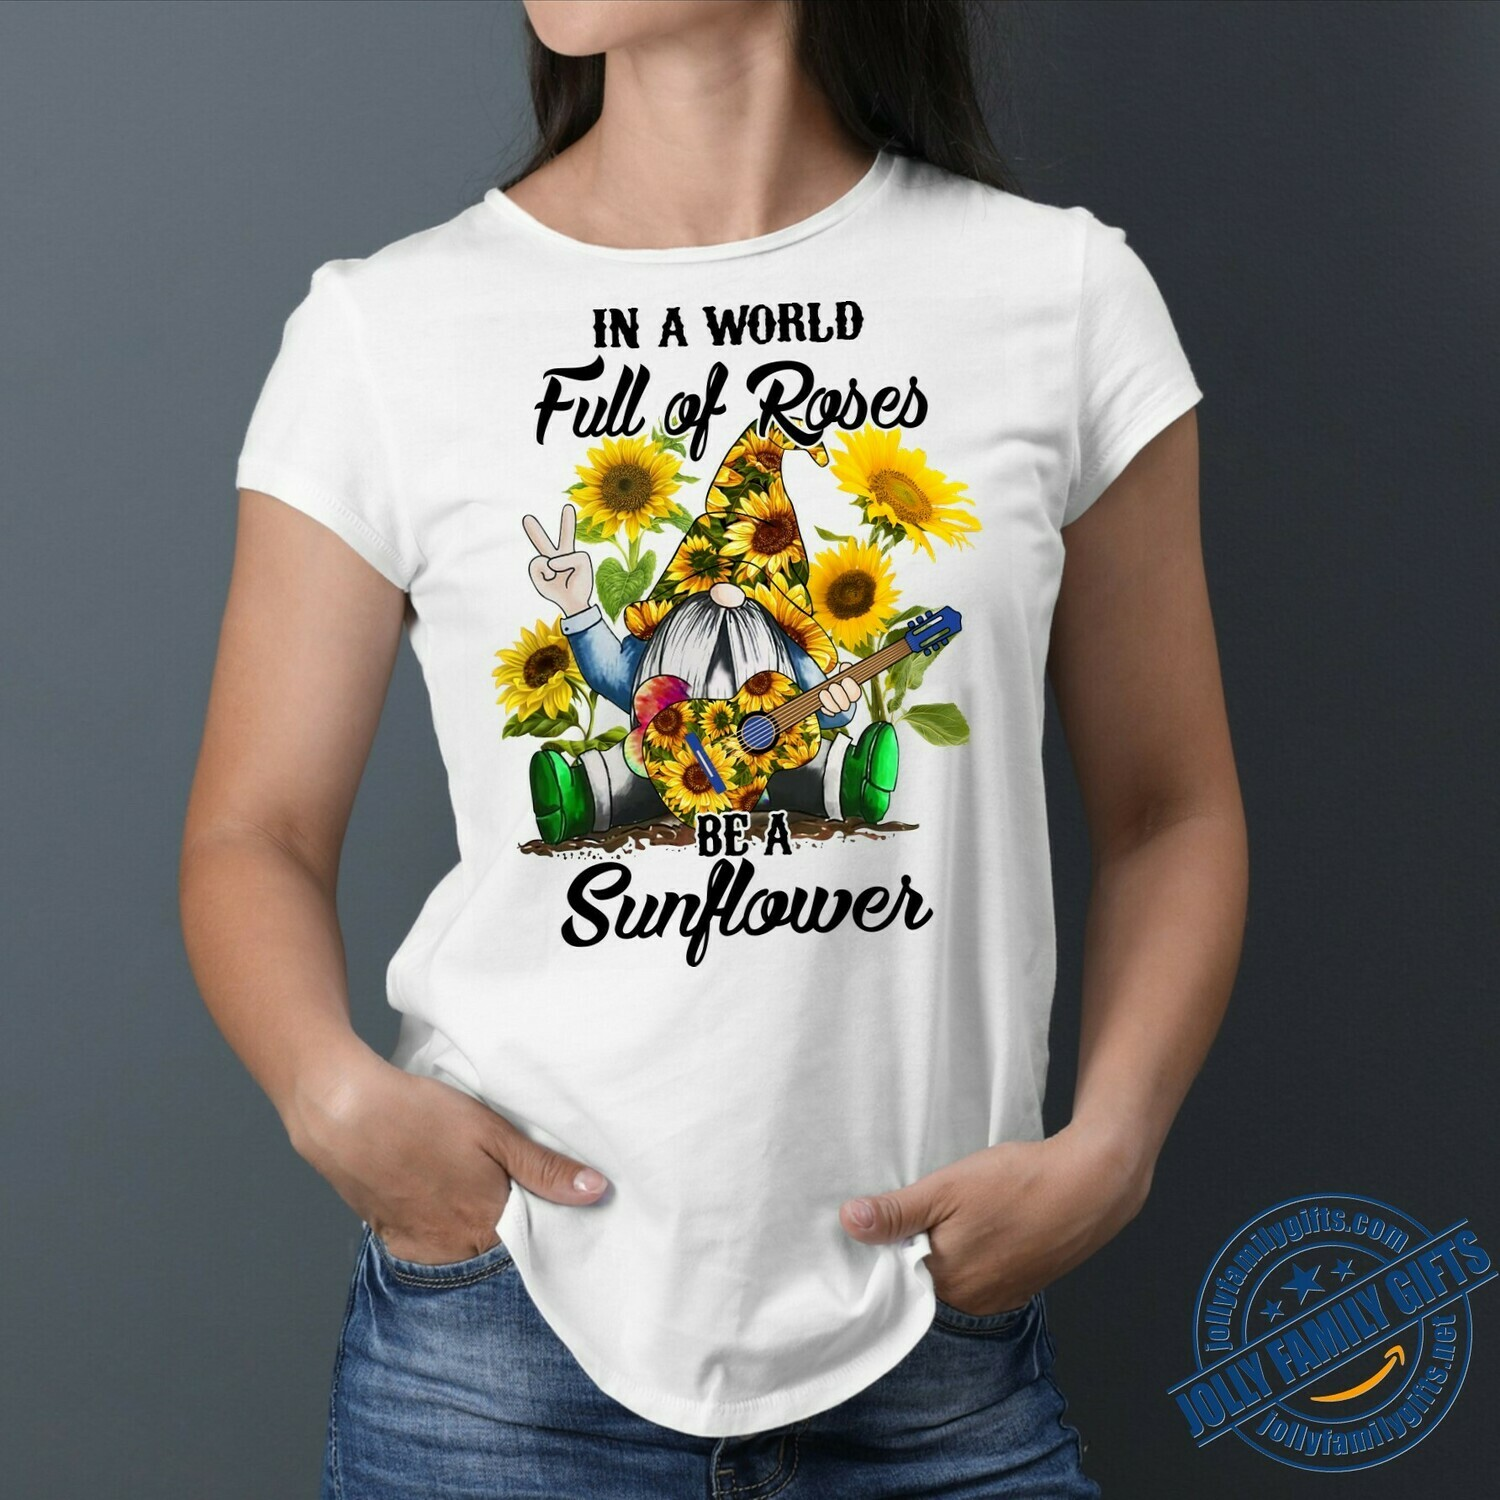 In A world full of Rose Be a Sun Flower Gnome play Guitar Gift For Men Women Unisex T-Shirt Hoodie Sweatshirt Sweater Plus Size for Ladies Women Men Kids Youth Gifts Tee Jolly Family Gifts